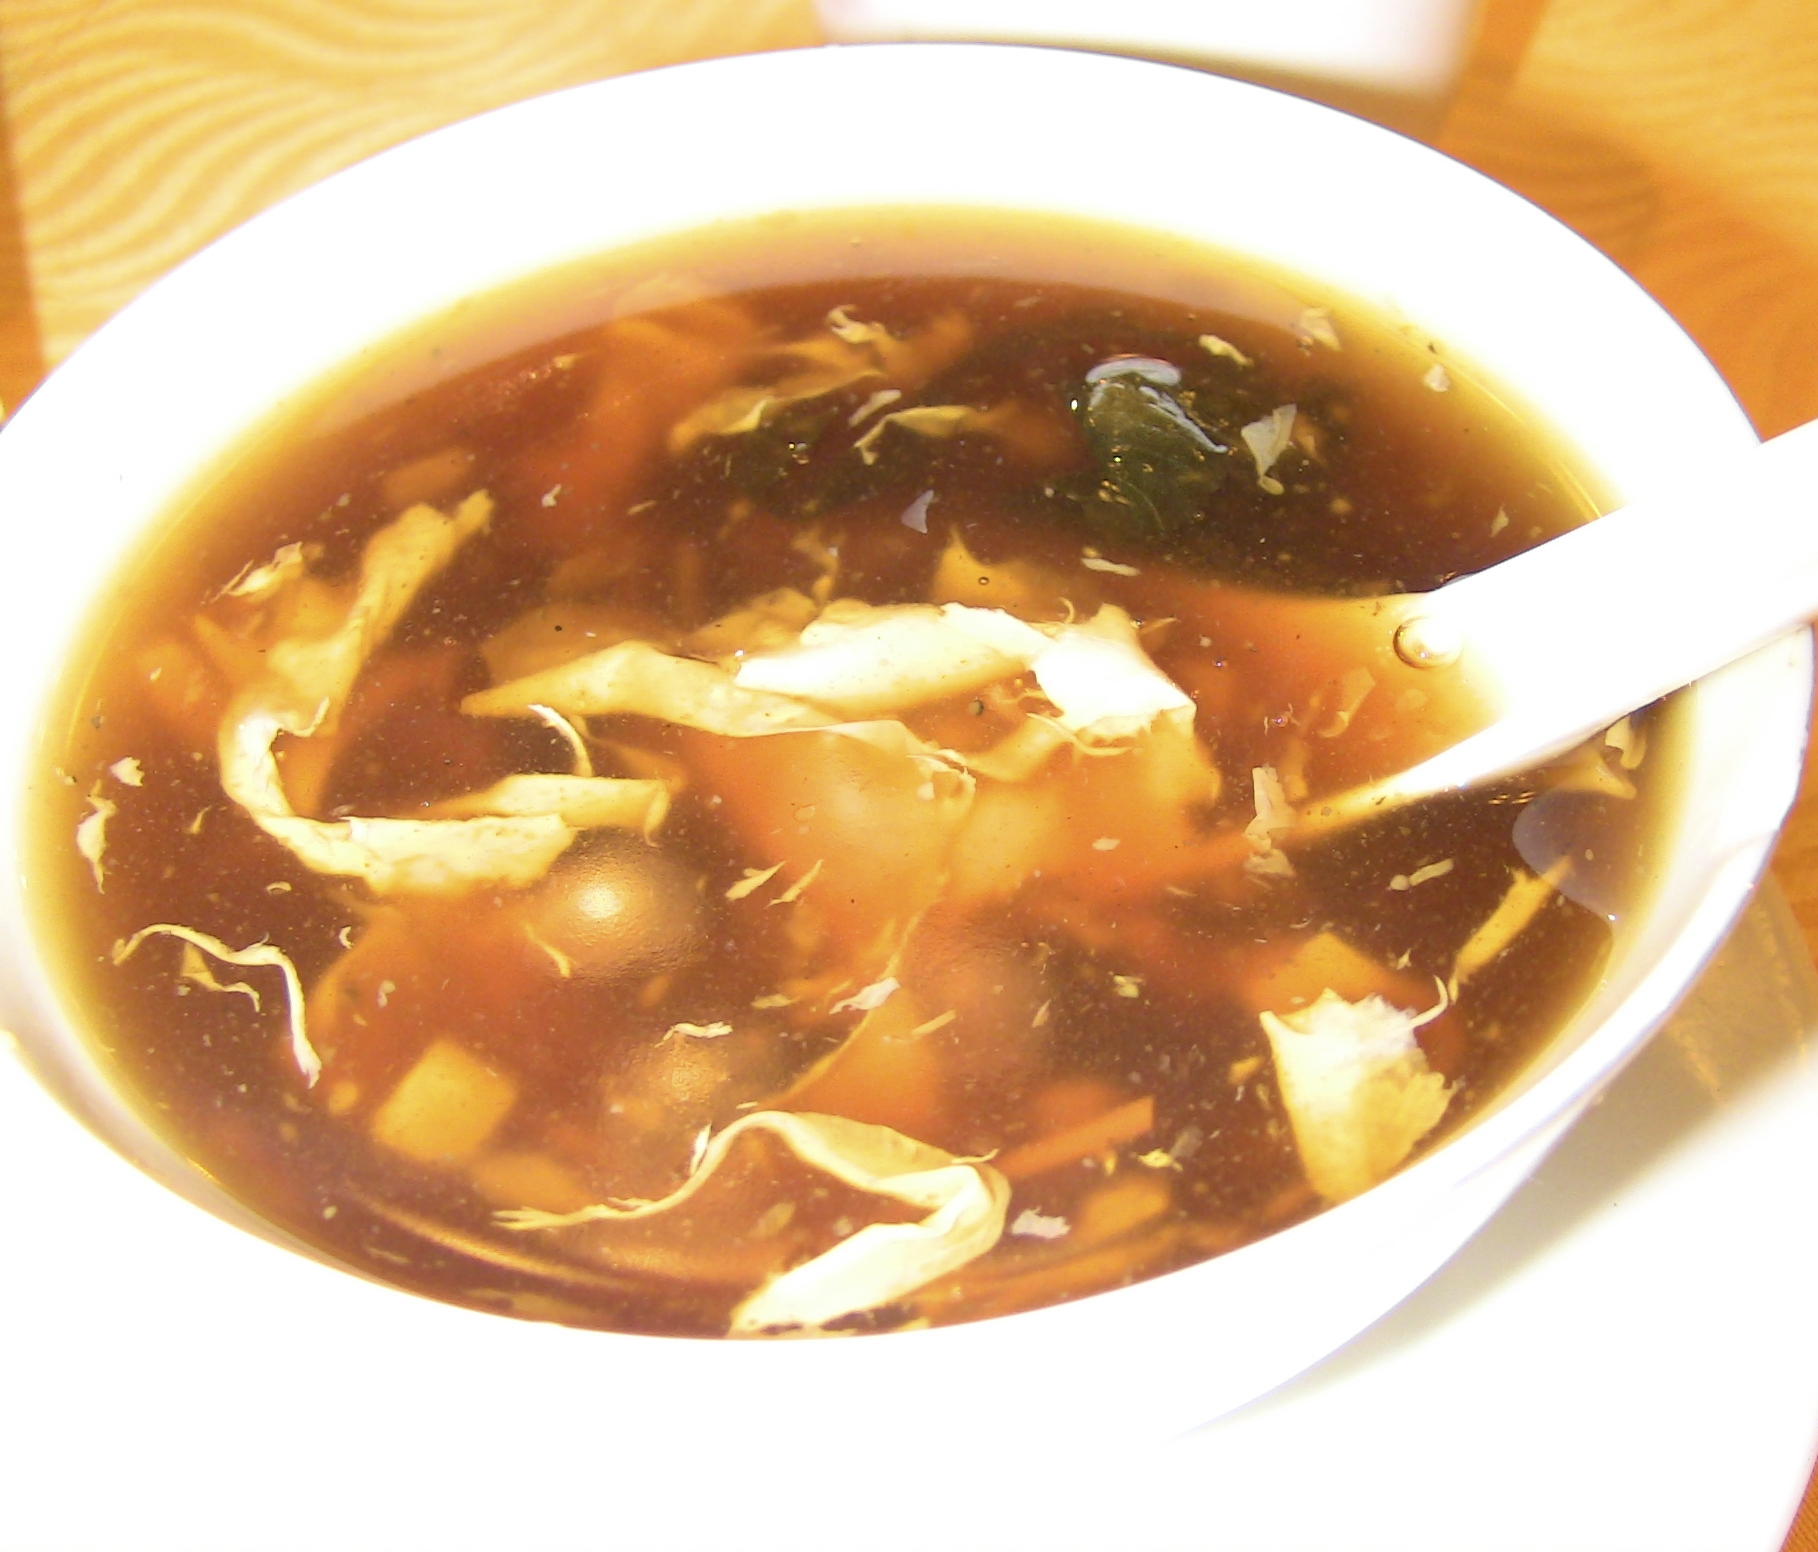 This is a soup that I was not able to try because it was explained to me after I ordered it that it had certain ingredients - which I shall not name - that completely wigged me out.  Ha ha!